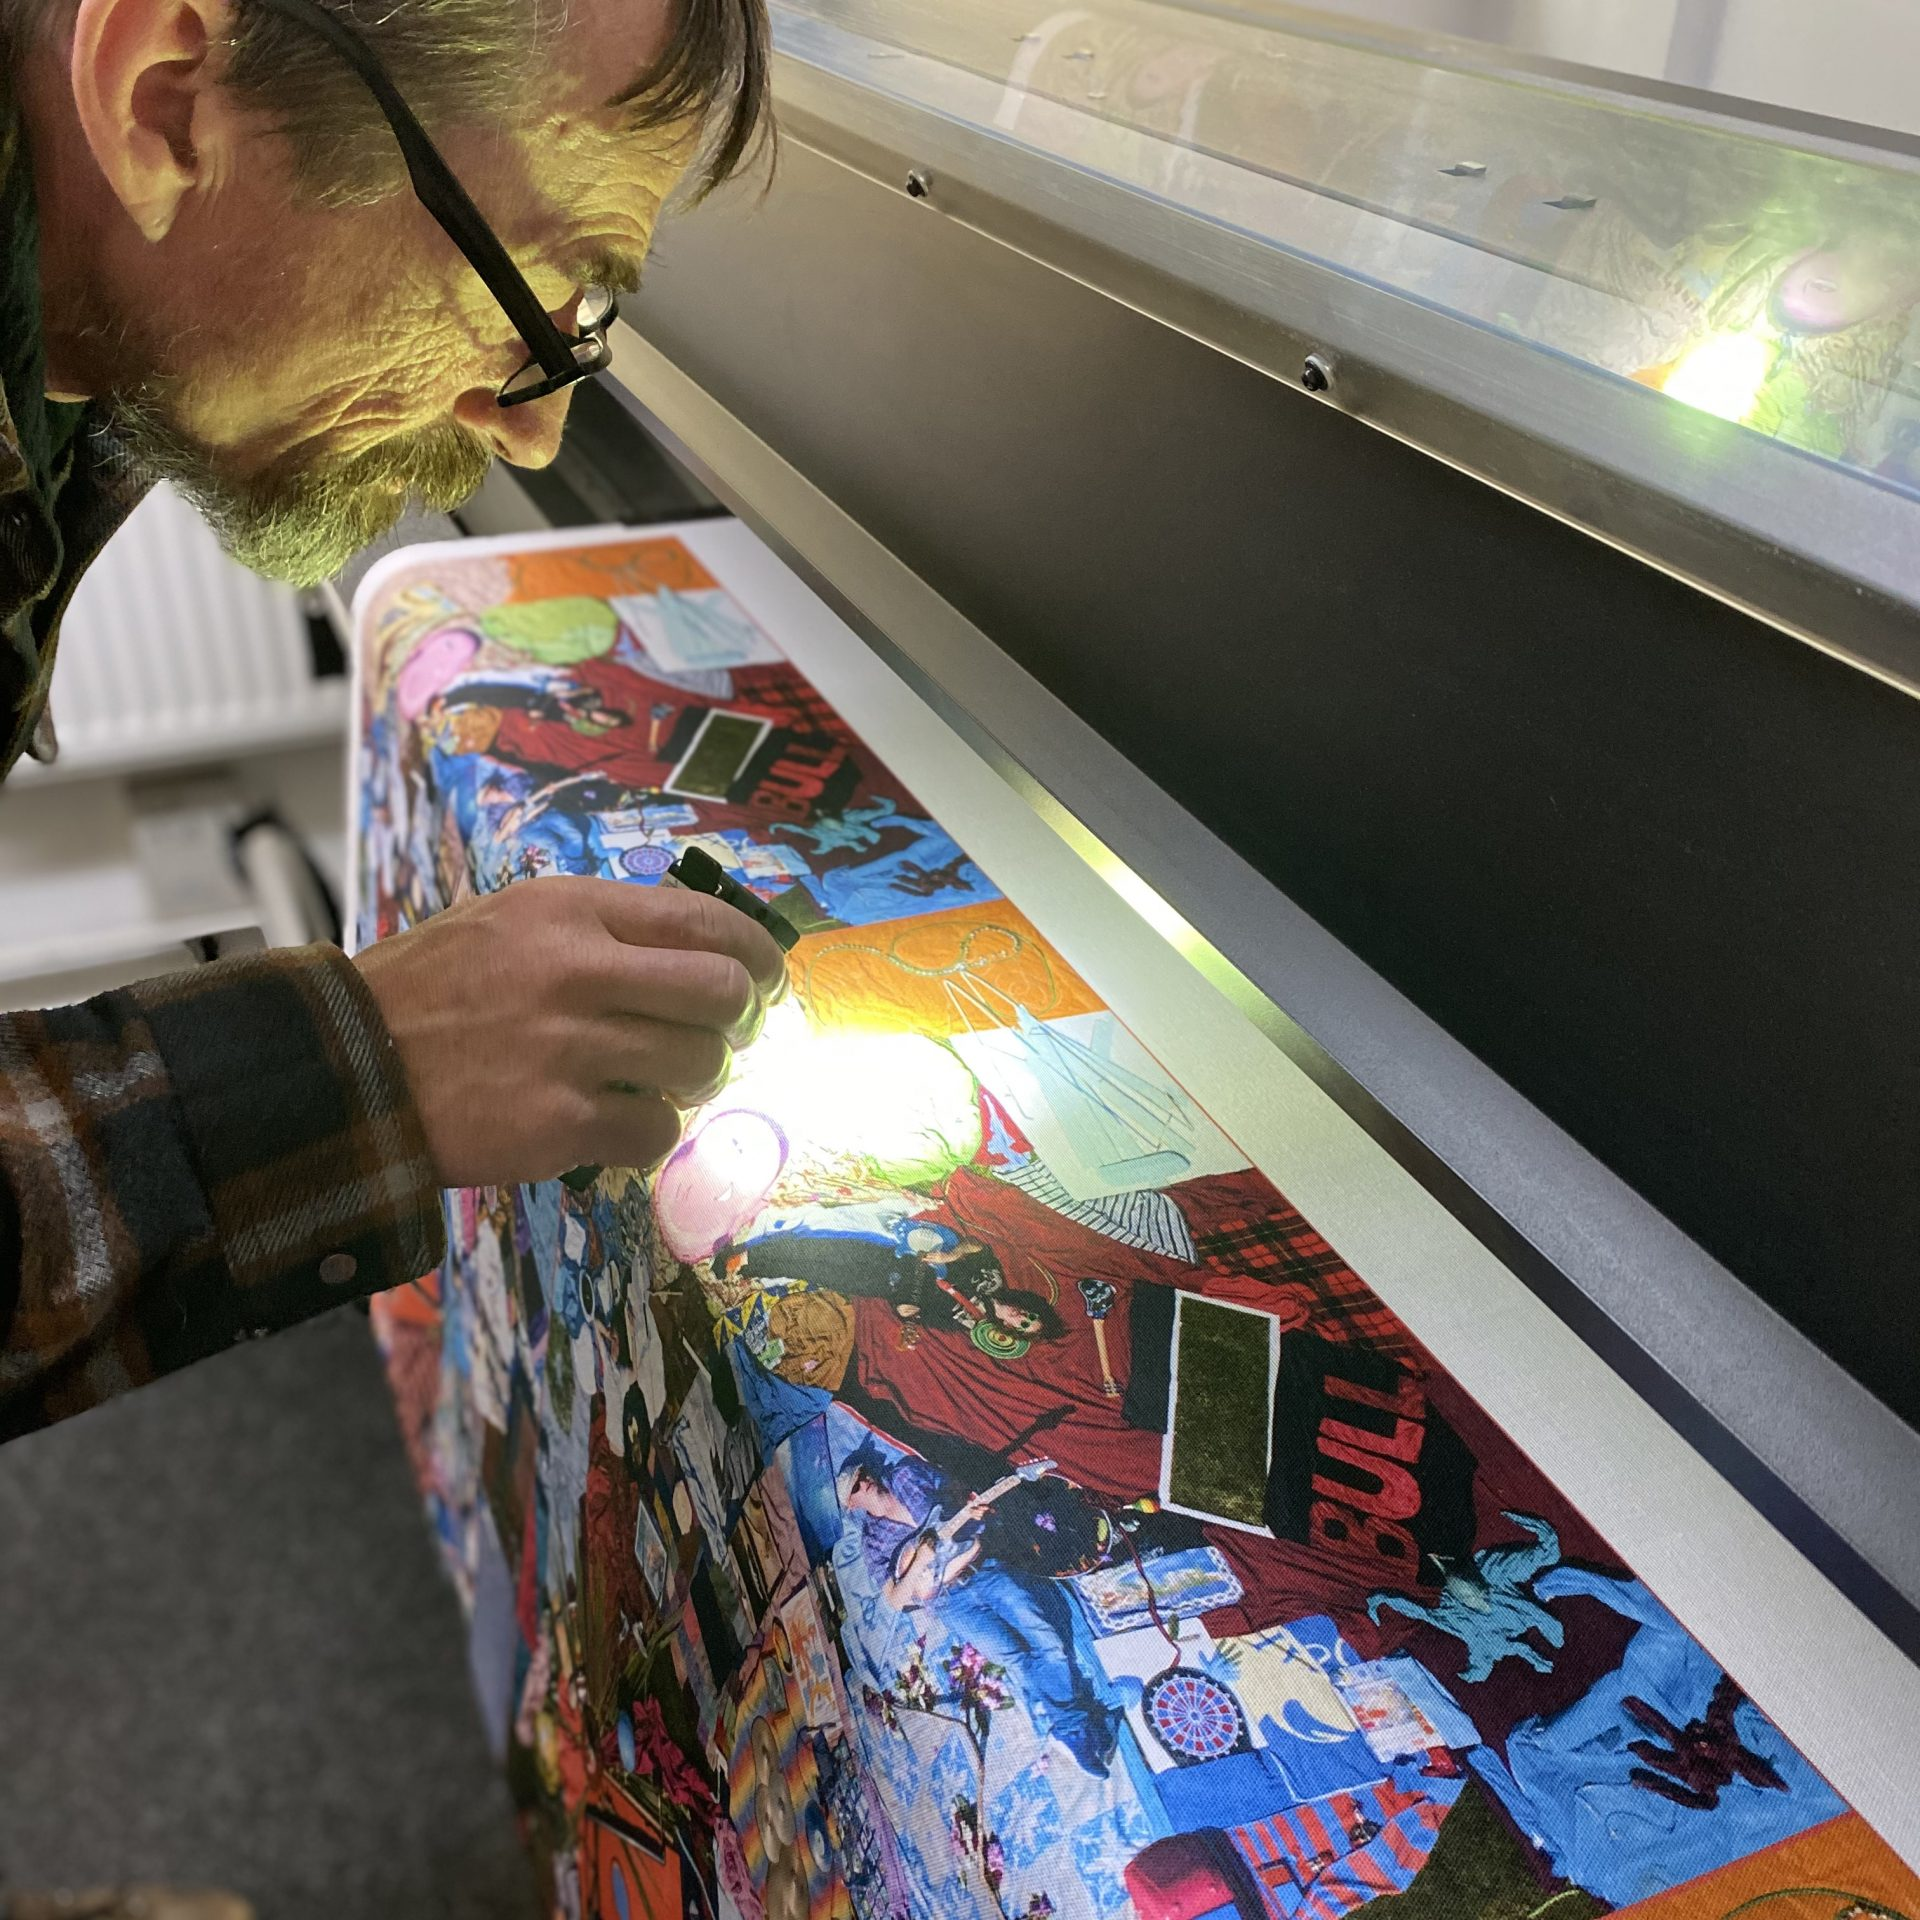 Digital printers of textile products like one bags and tea towels